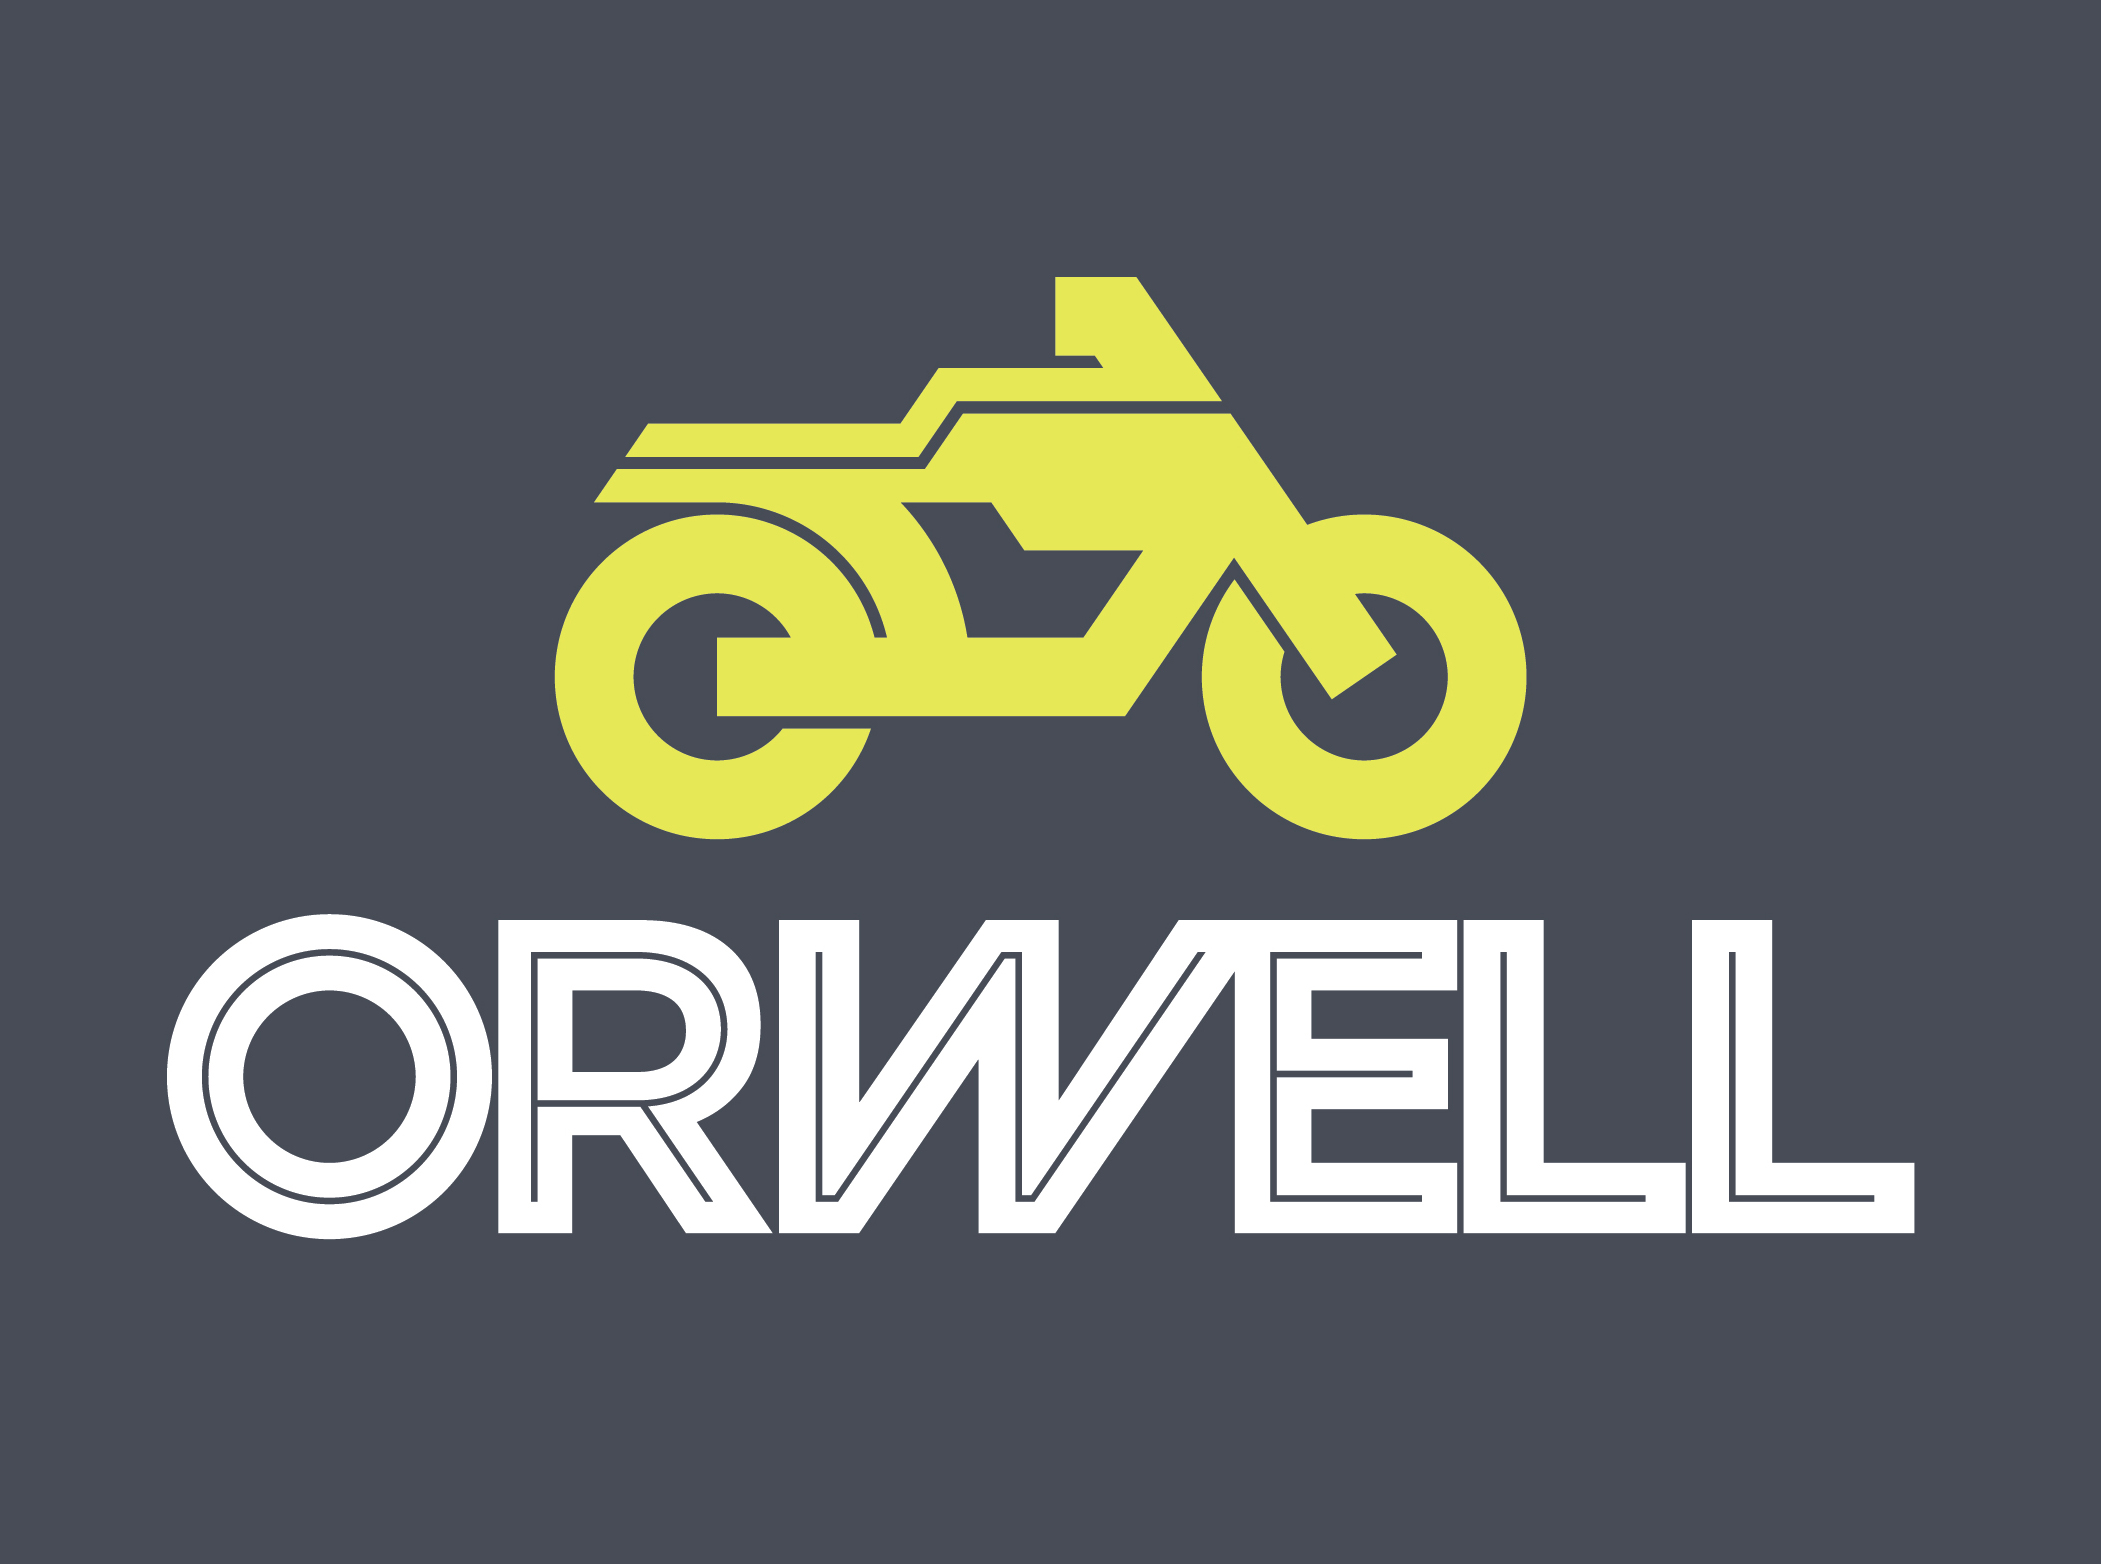 Orwell_Stacked_Yellow Bike_White text.jpg